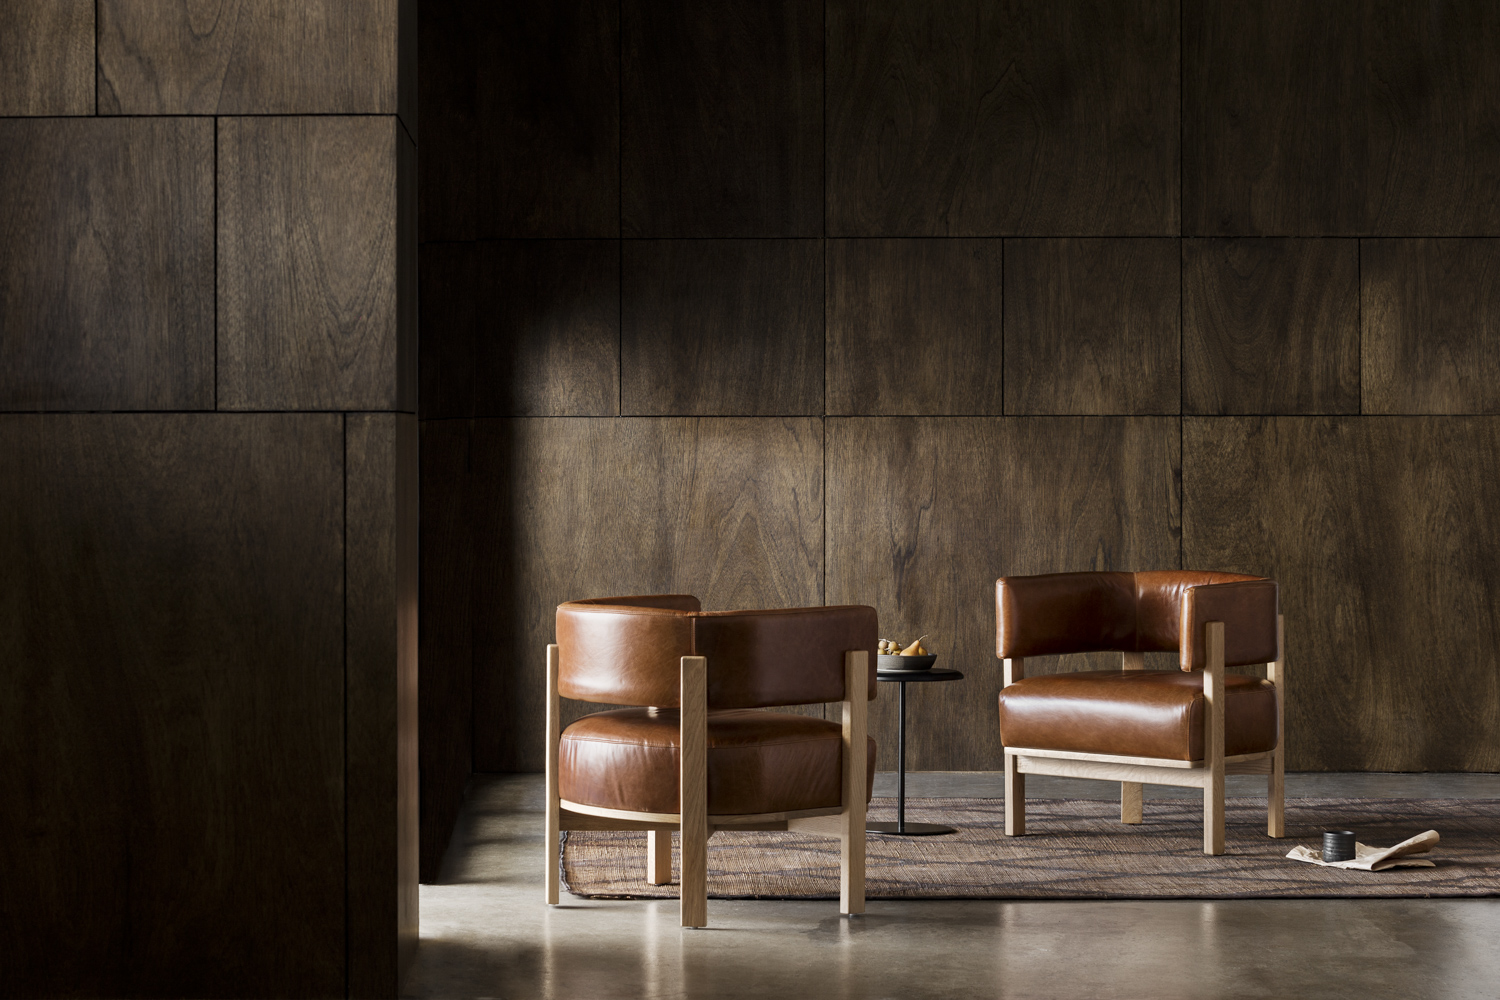 Gallery Of Flo Armchair By Anaca Studio Local Australian Furniture Design Collingwood, Melbourne Image 10